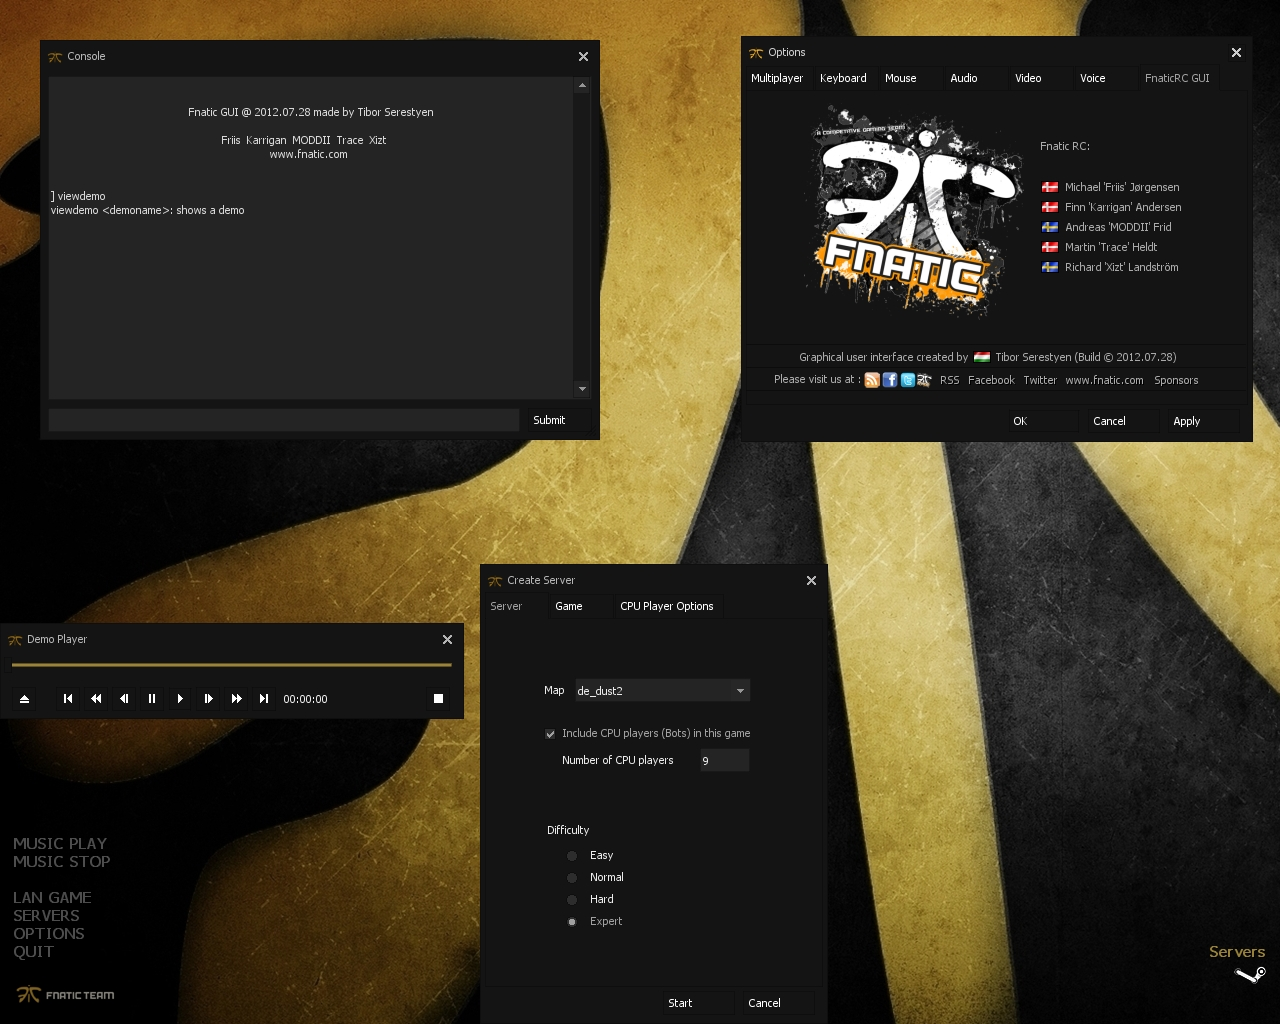 FnaticRC GUI 2012 screenshot